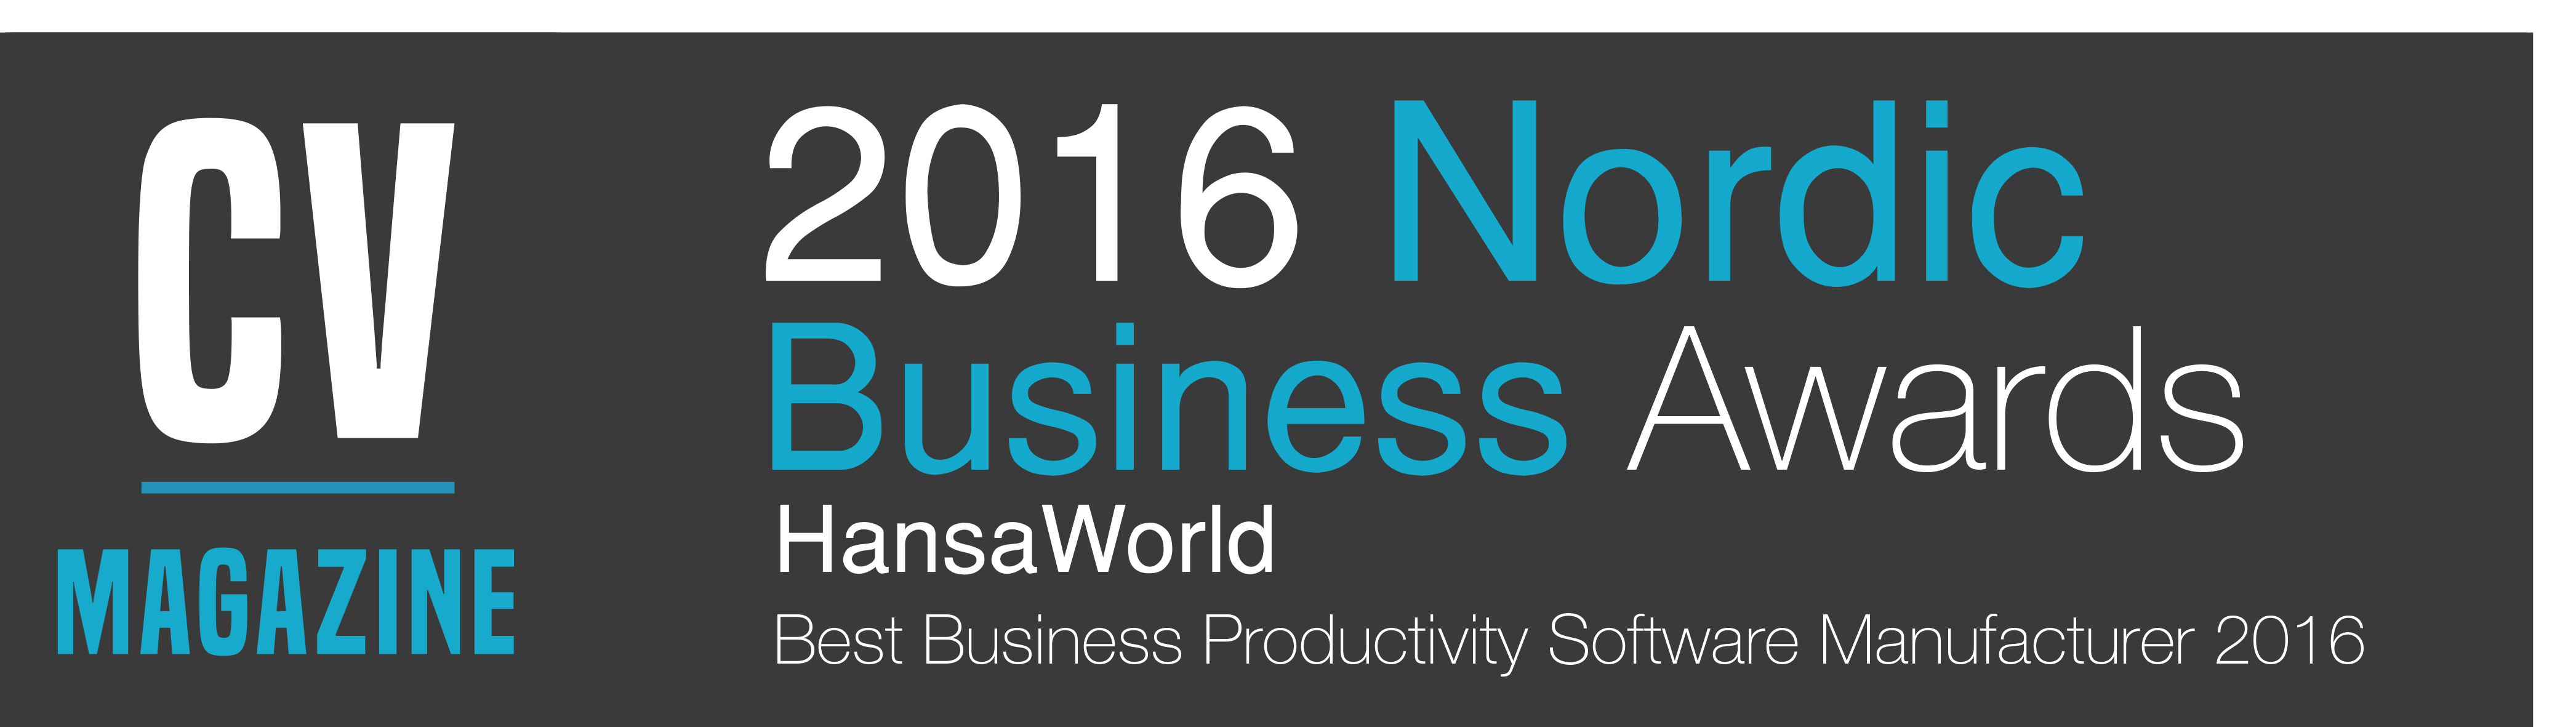 2016 Nordic Business Awards